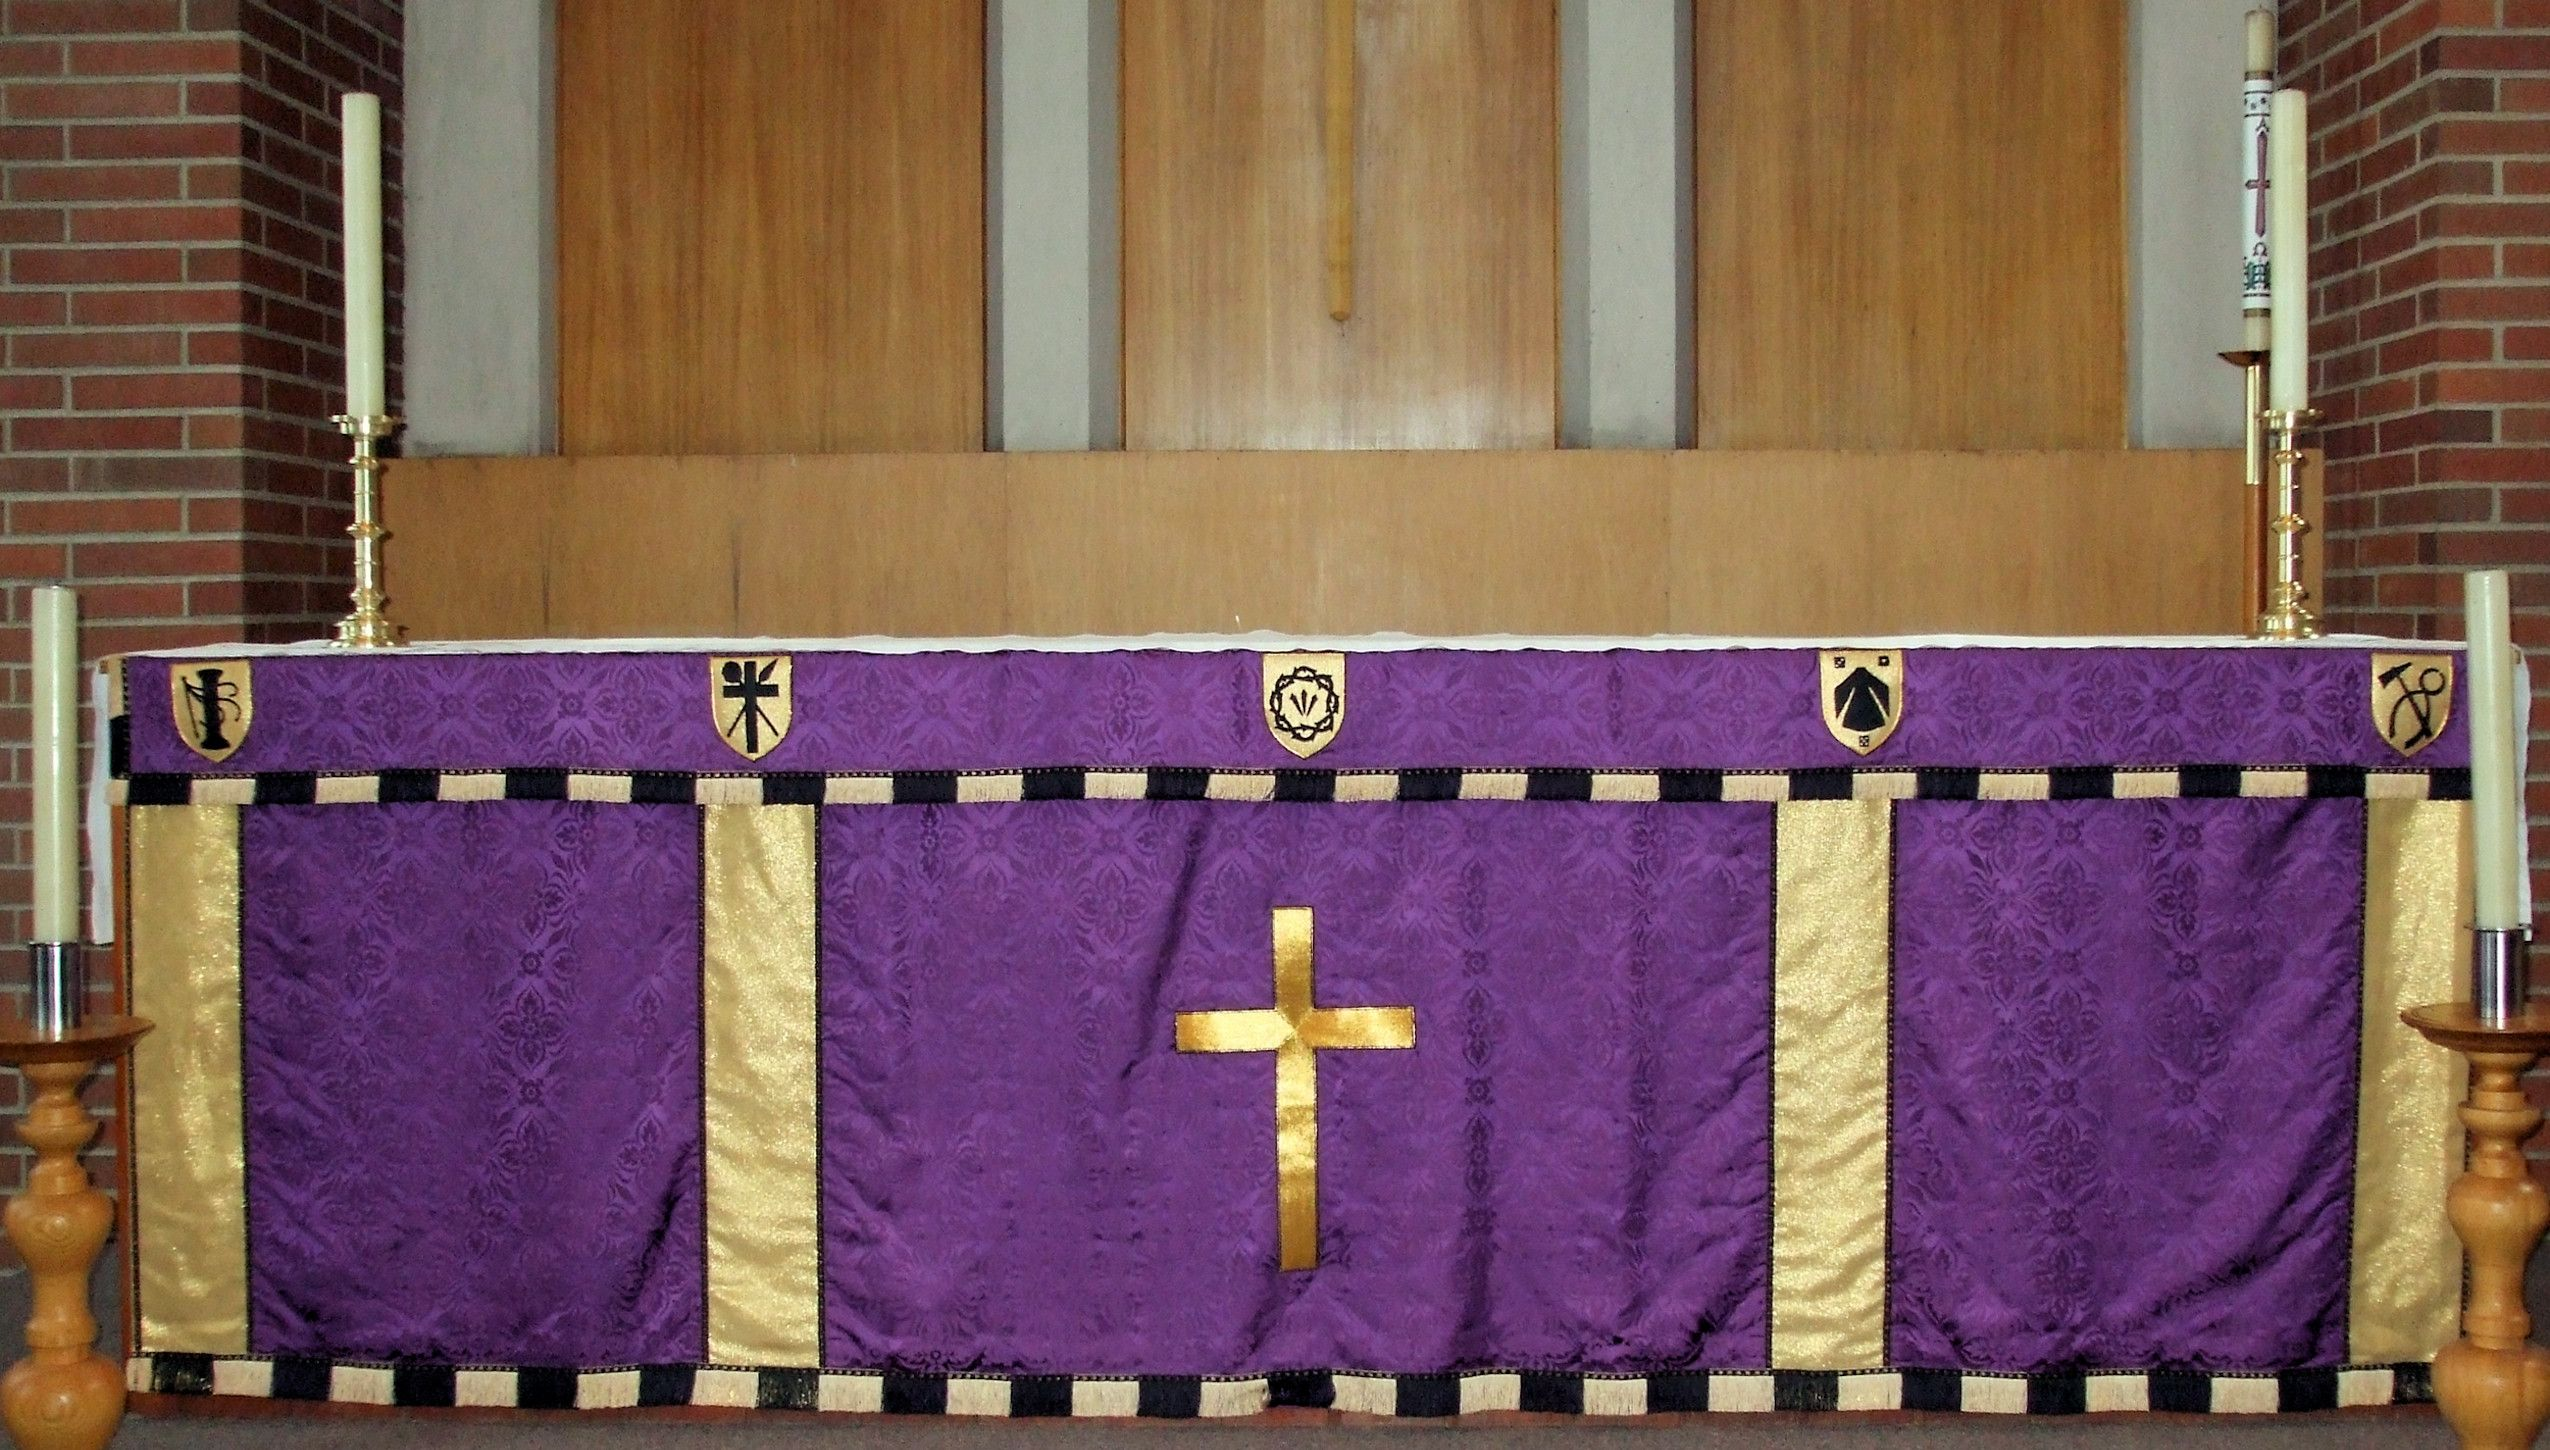 St andrews altar 4 church altar in anglican church set up for st andrews altar 4 church altar in anglican church set up for lent with purple and gold altar cloth altar cloth has symbols of the crucifixion biocorpaavc